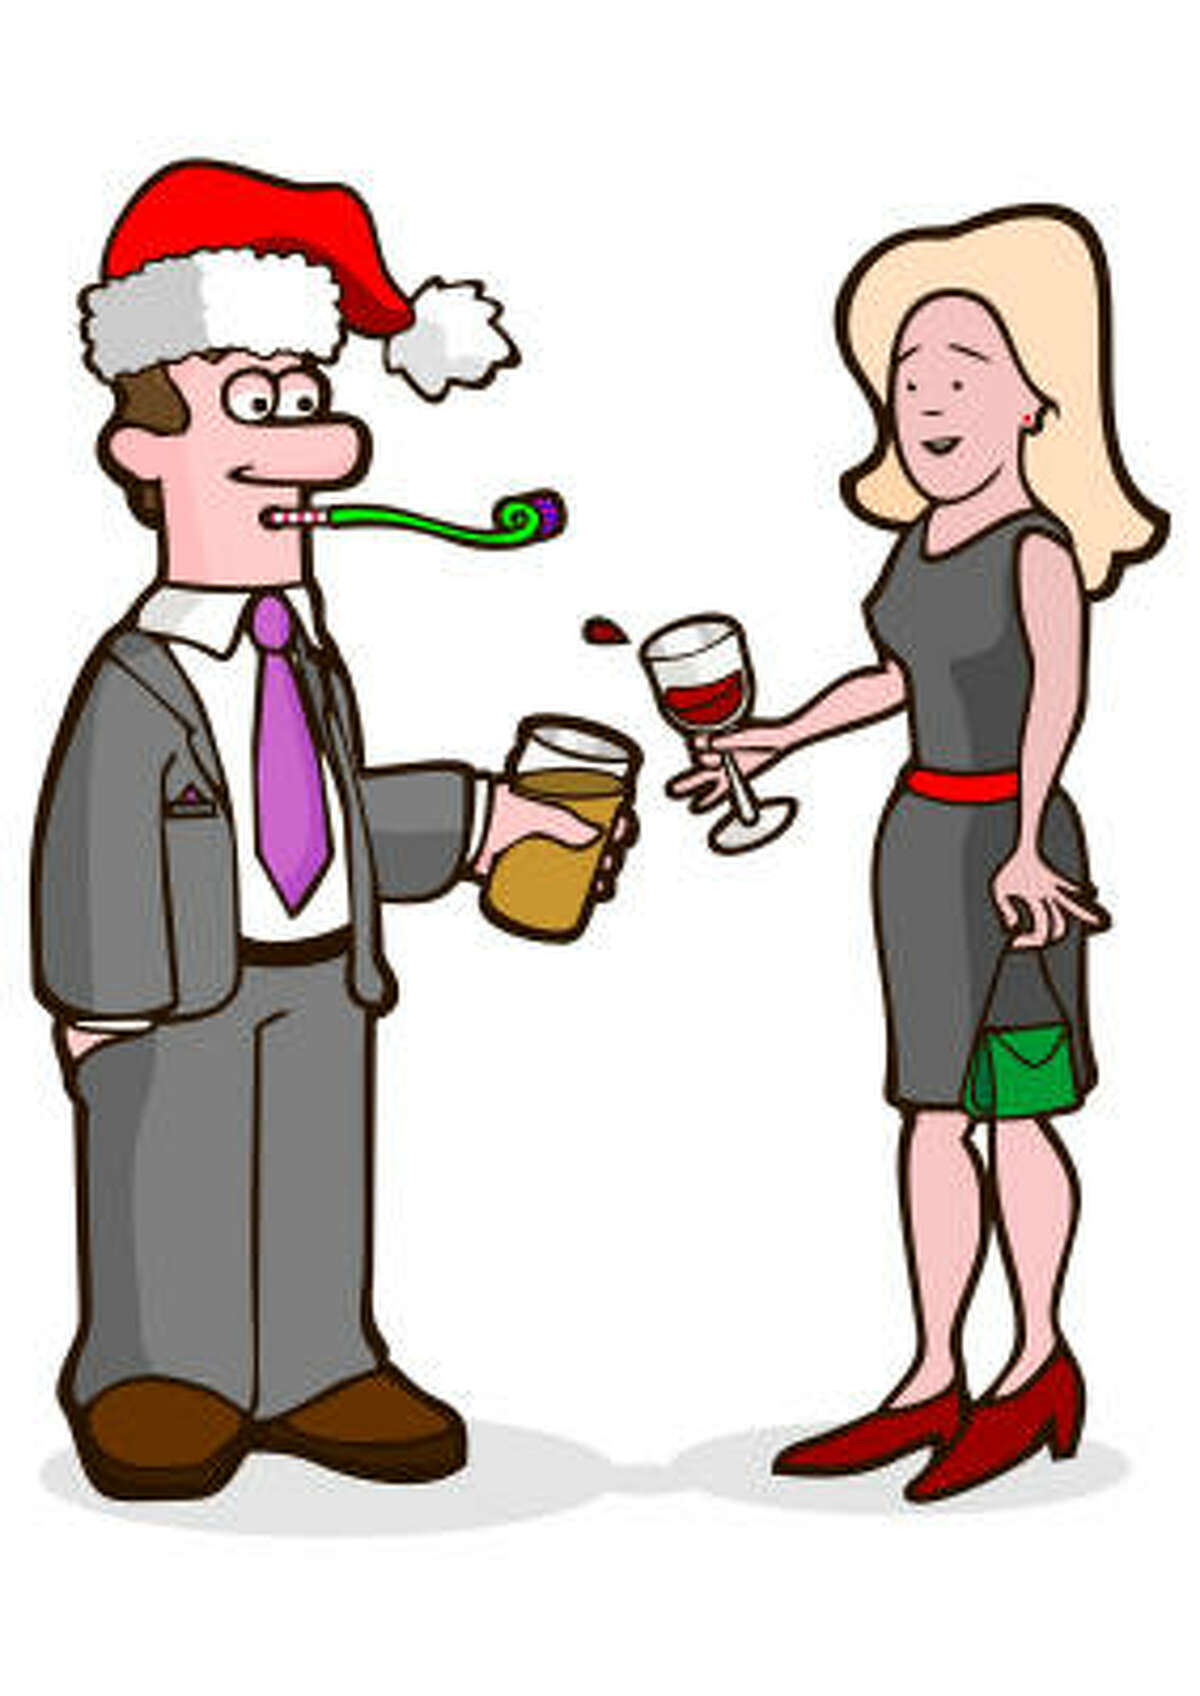 Make sure your date won't clash with your boss at the company Christmas party.